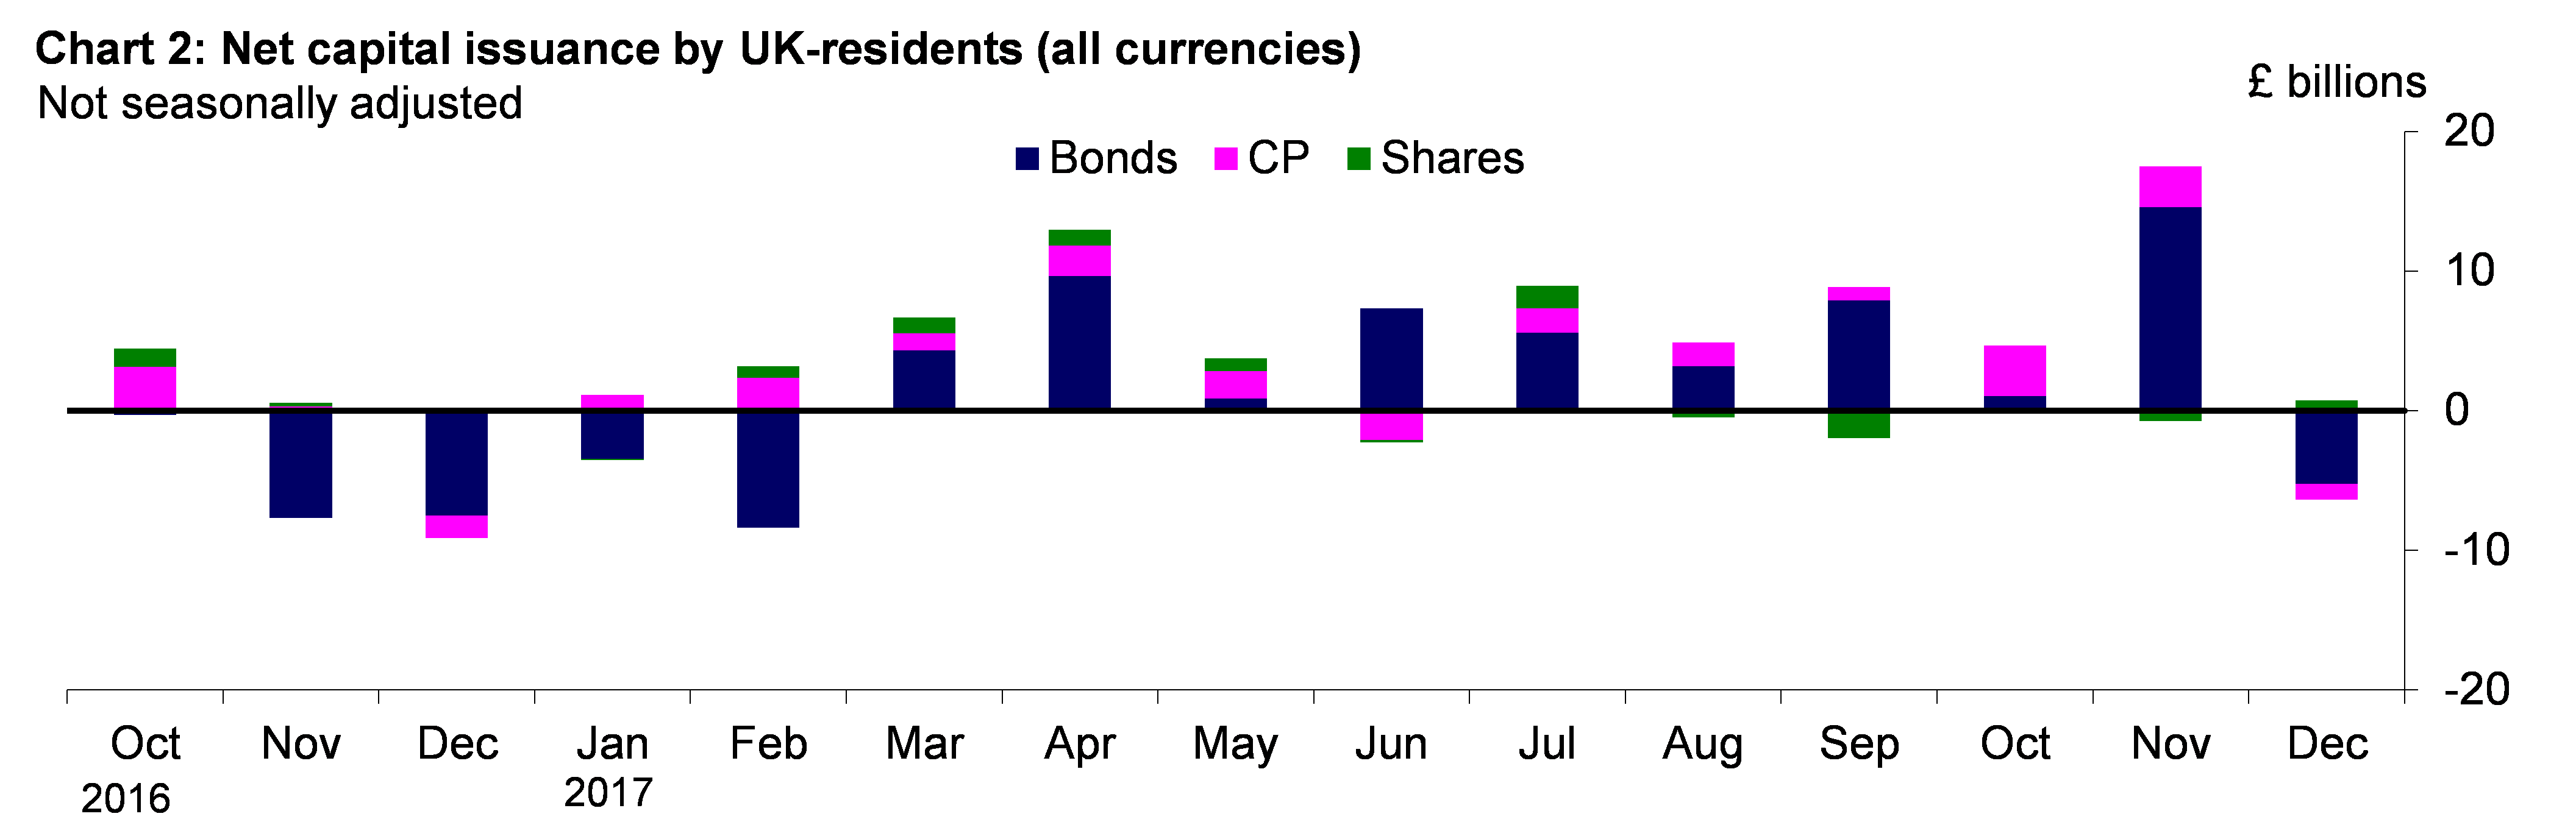 Chart 2: Net capital issuance by UK-residents (all currencies)